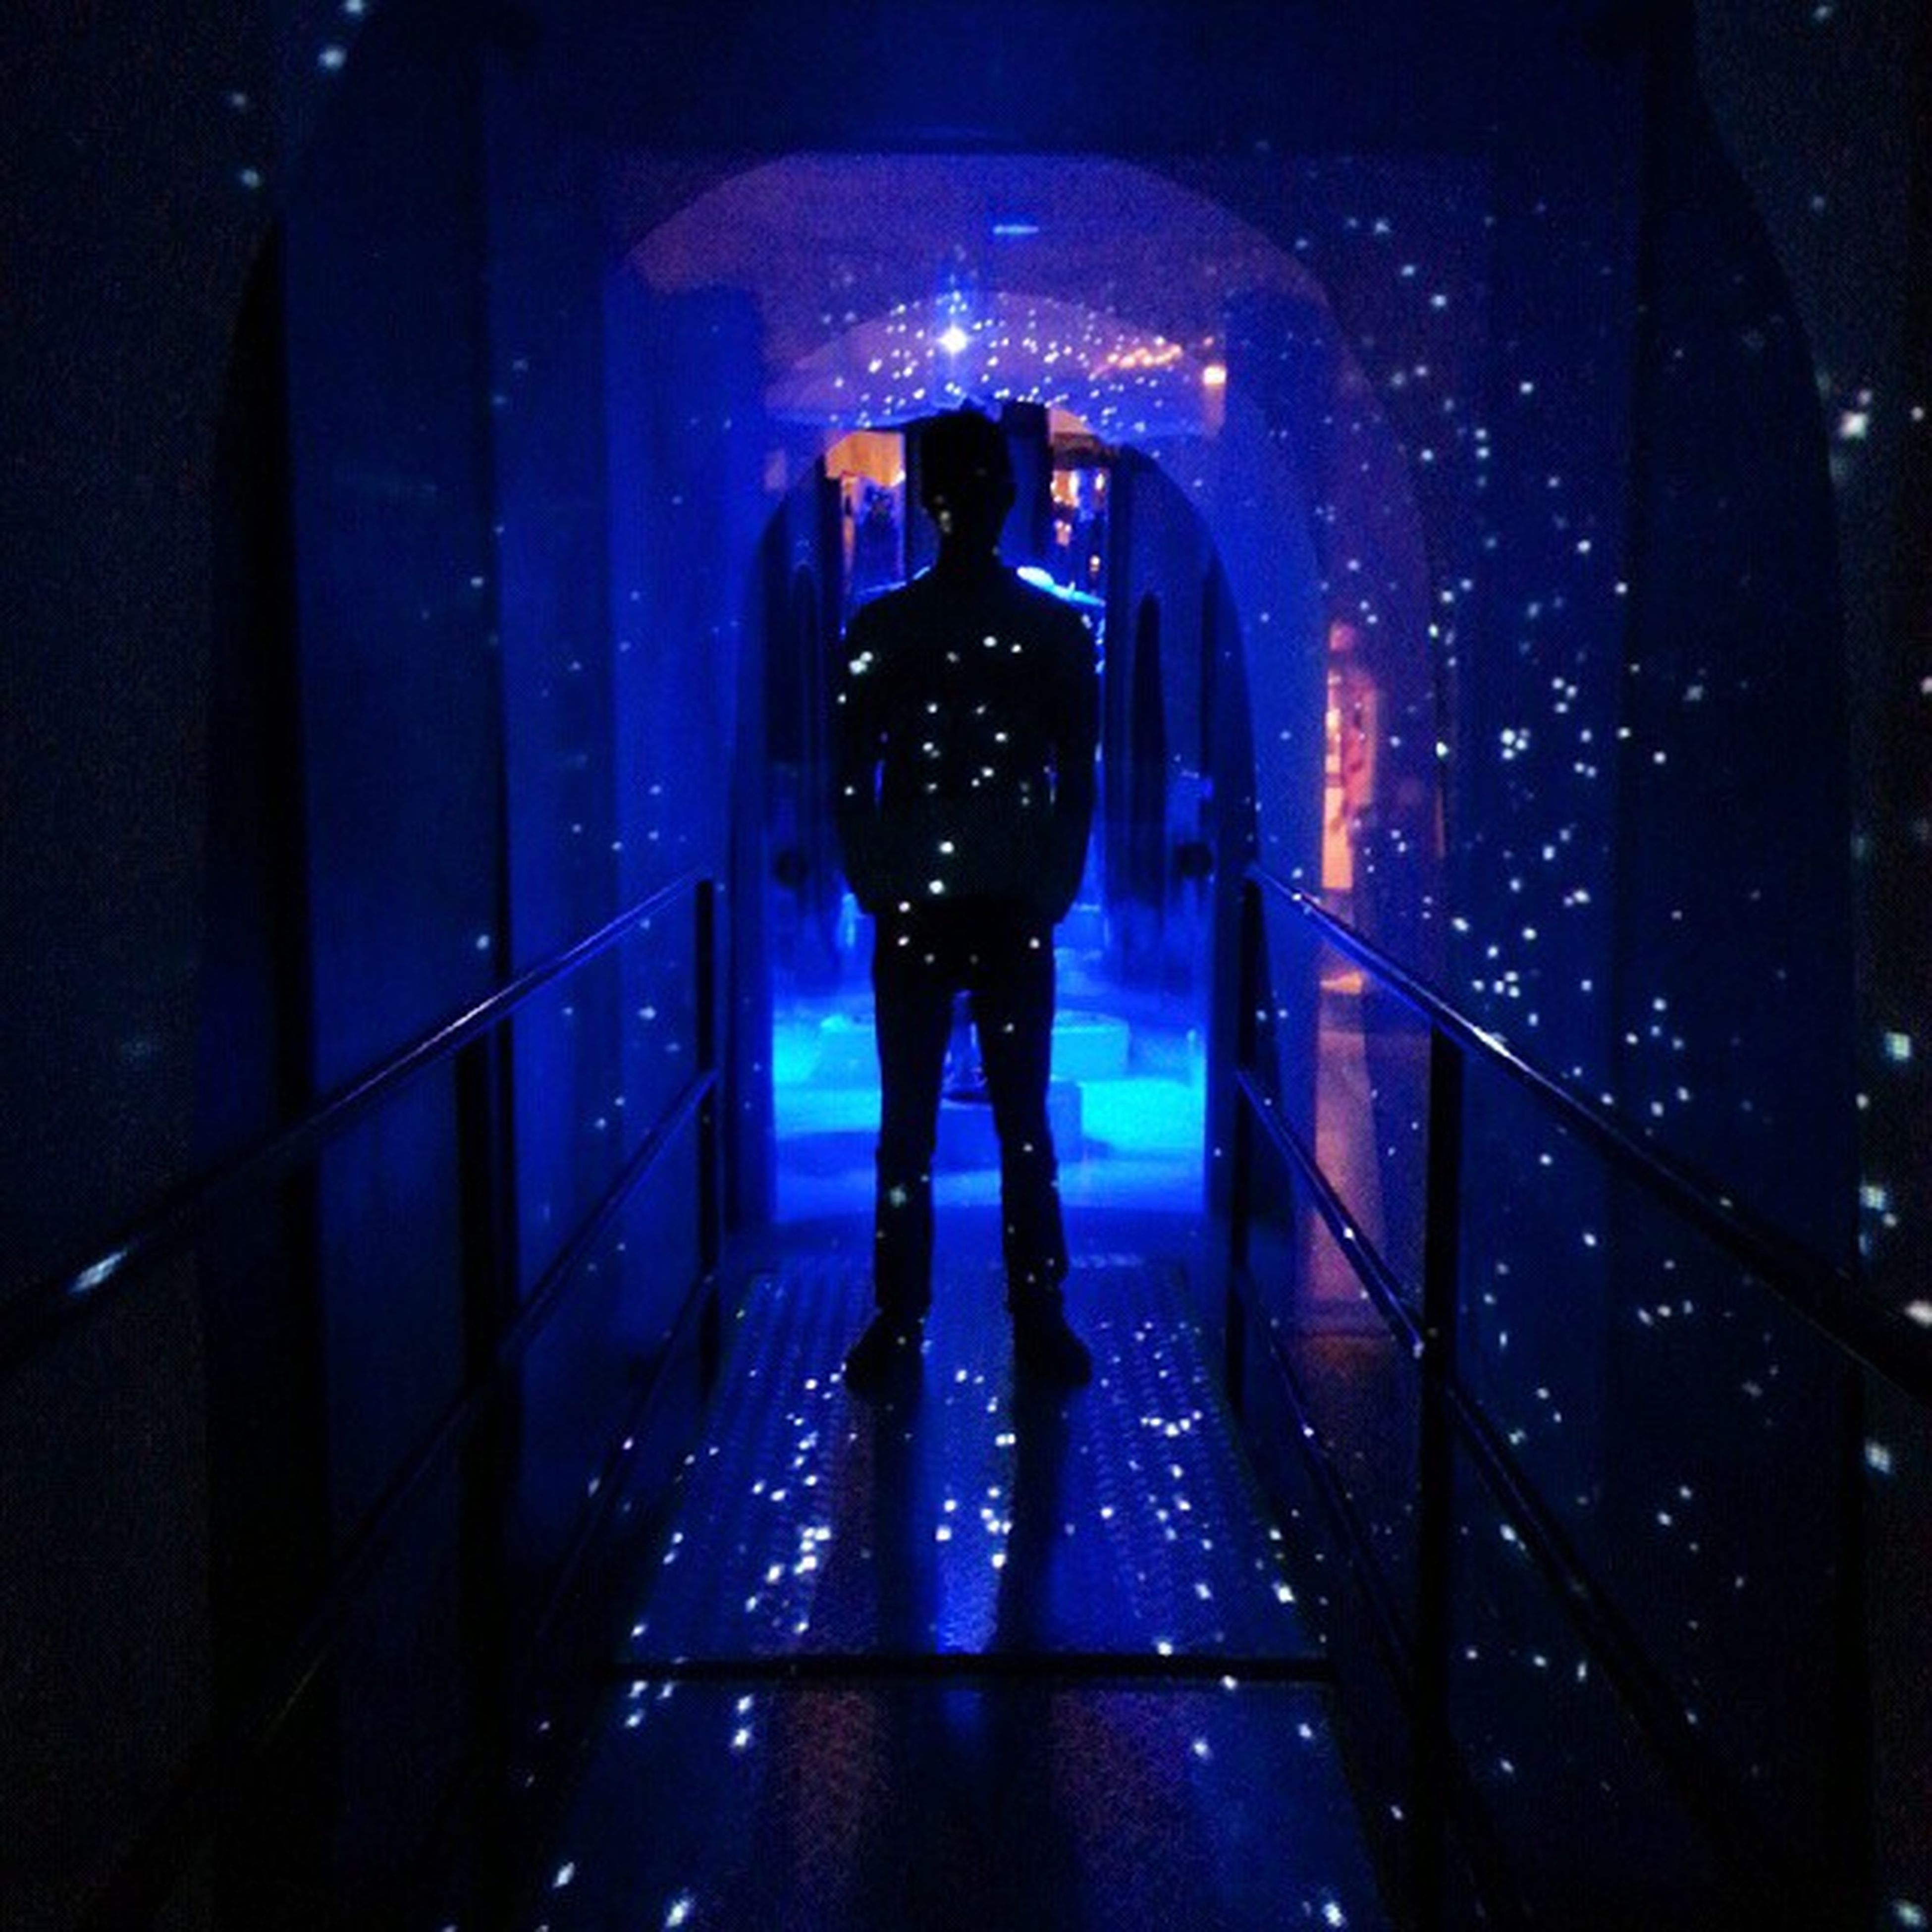 full length, indoors, lifestyles, walking, architecture, rear view, built structure, leisure activity, men, standing, illuminated, night, casual clothing, tunnel, person, silhouette, wall - building feature, reflection